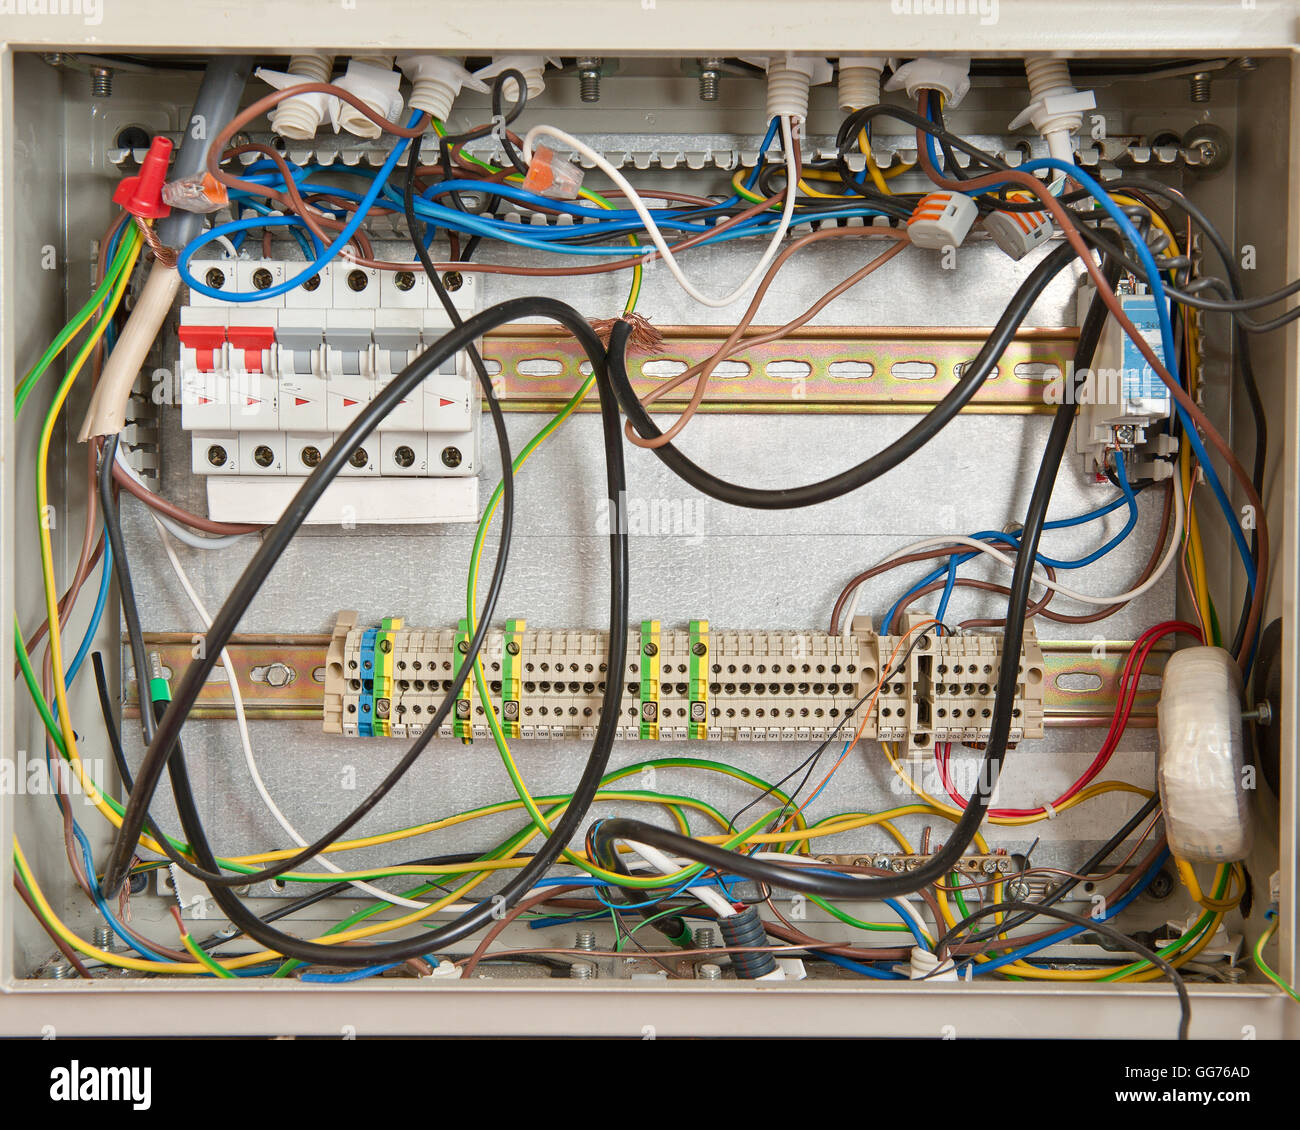 hight resolution of electrical connections in a fuse box